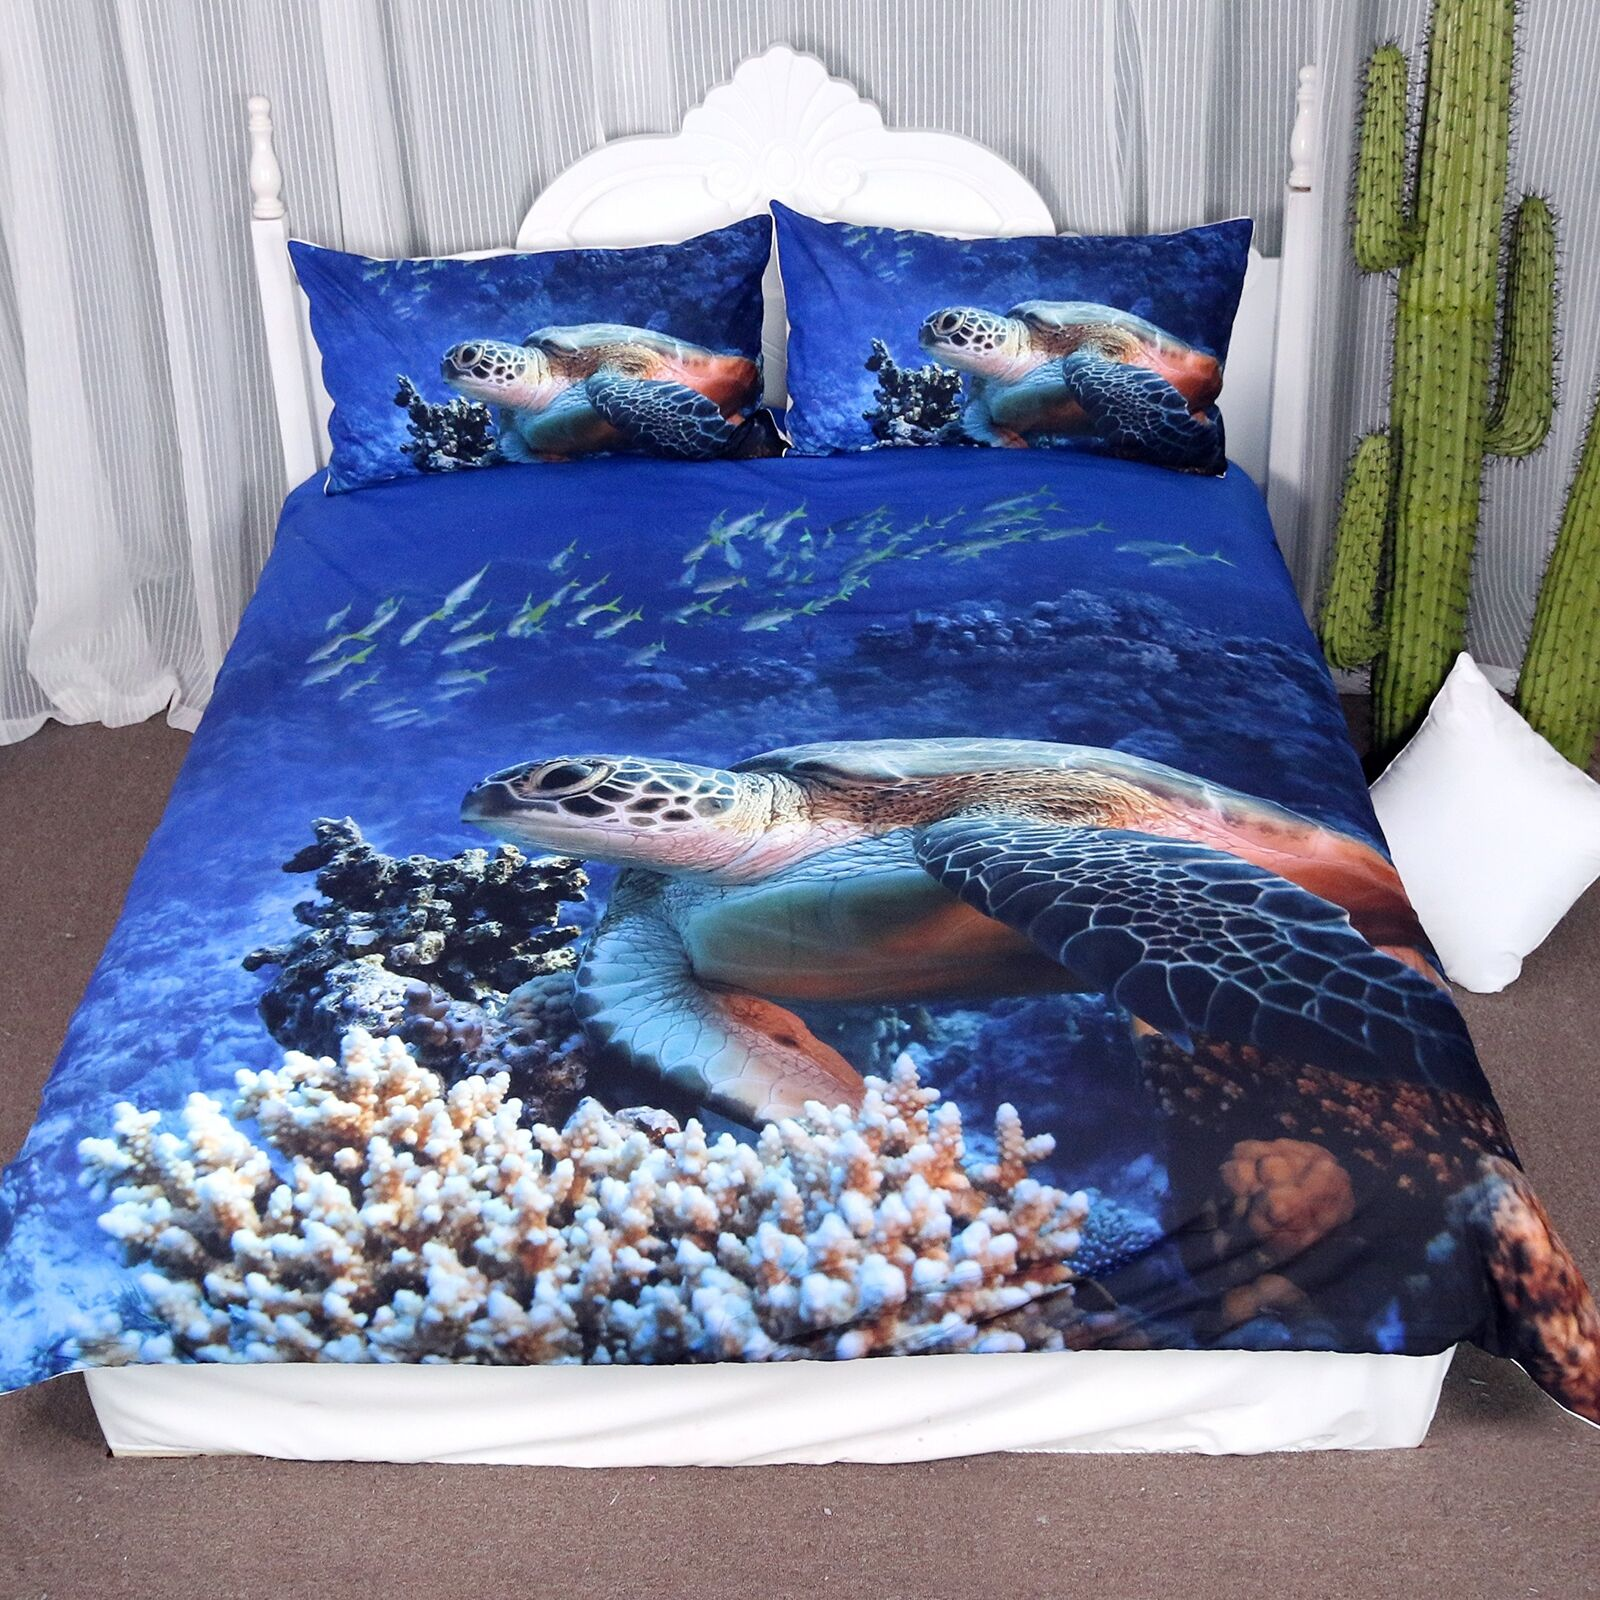 Arightex Turtle Bedding Sea bluee Duvet Cover Ocean 3d Corals Fishes Print for